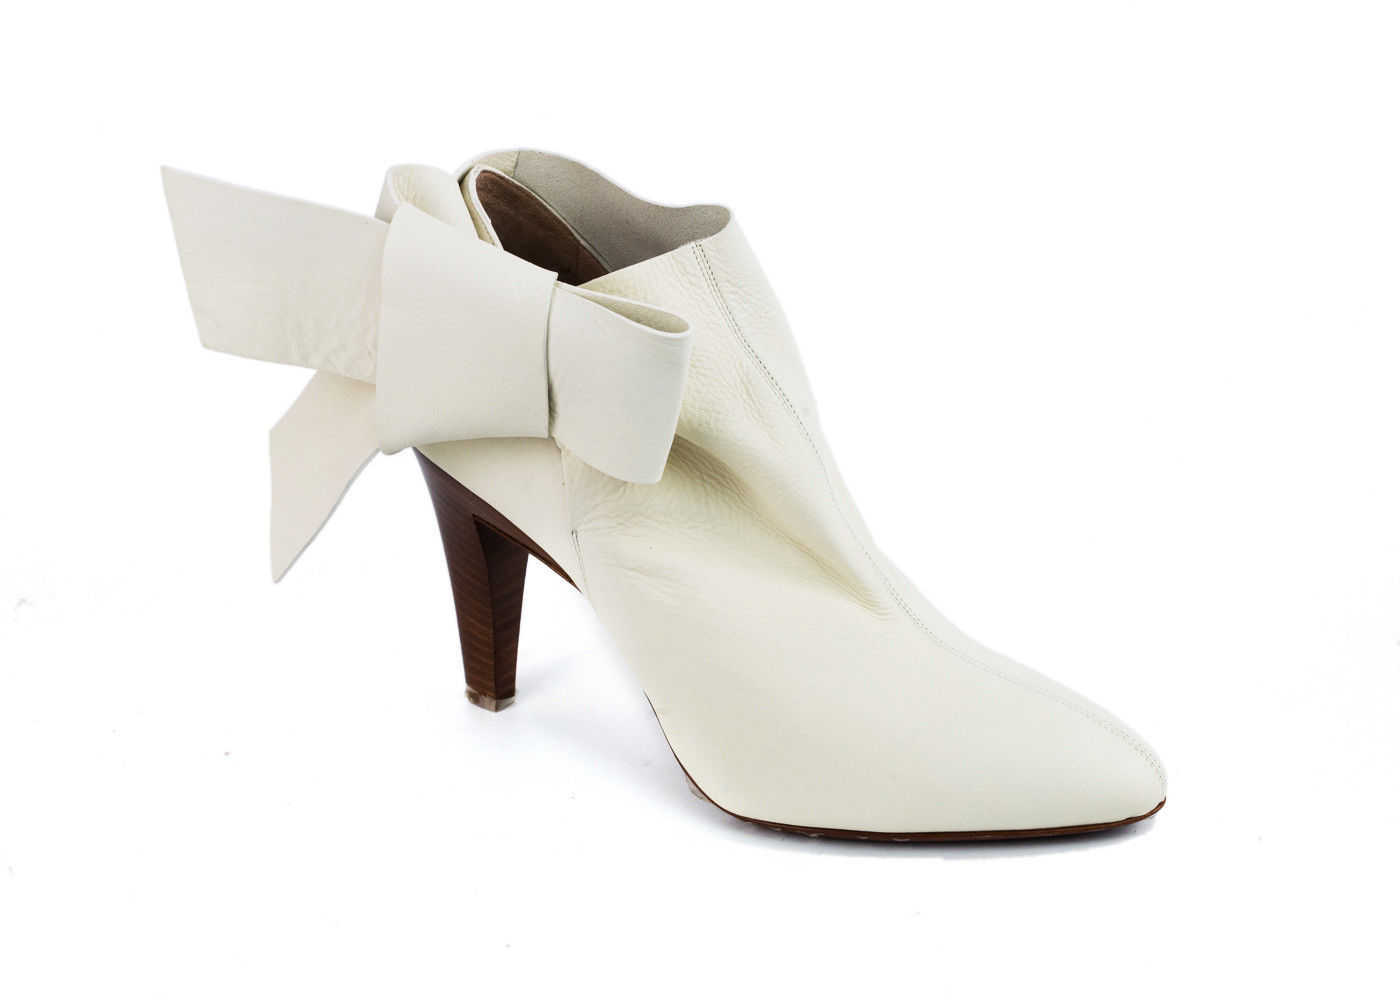 cf217bc1a56f0 Roberto Cavalli Women's Cream Bow Ankle and 50 similar items. S l1600